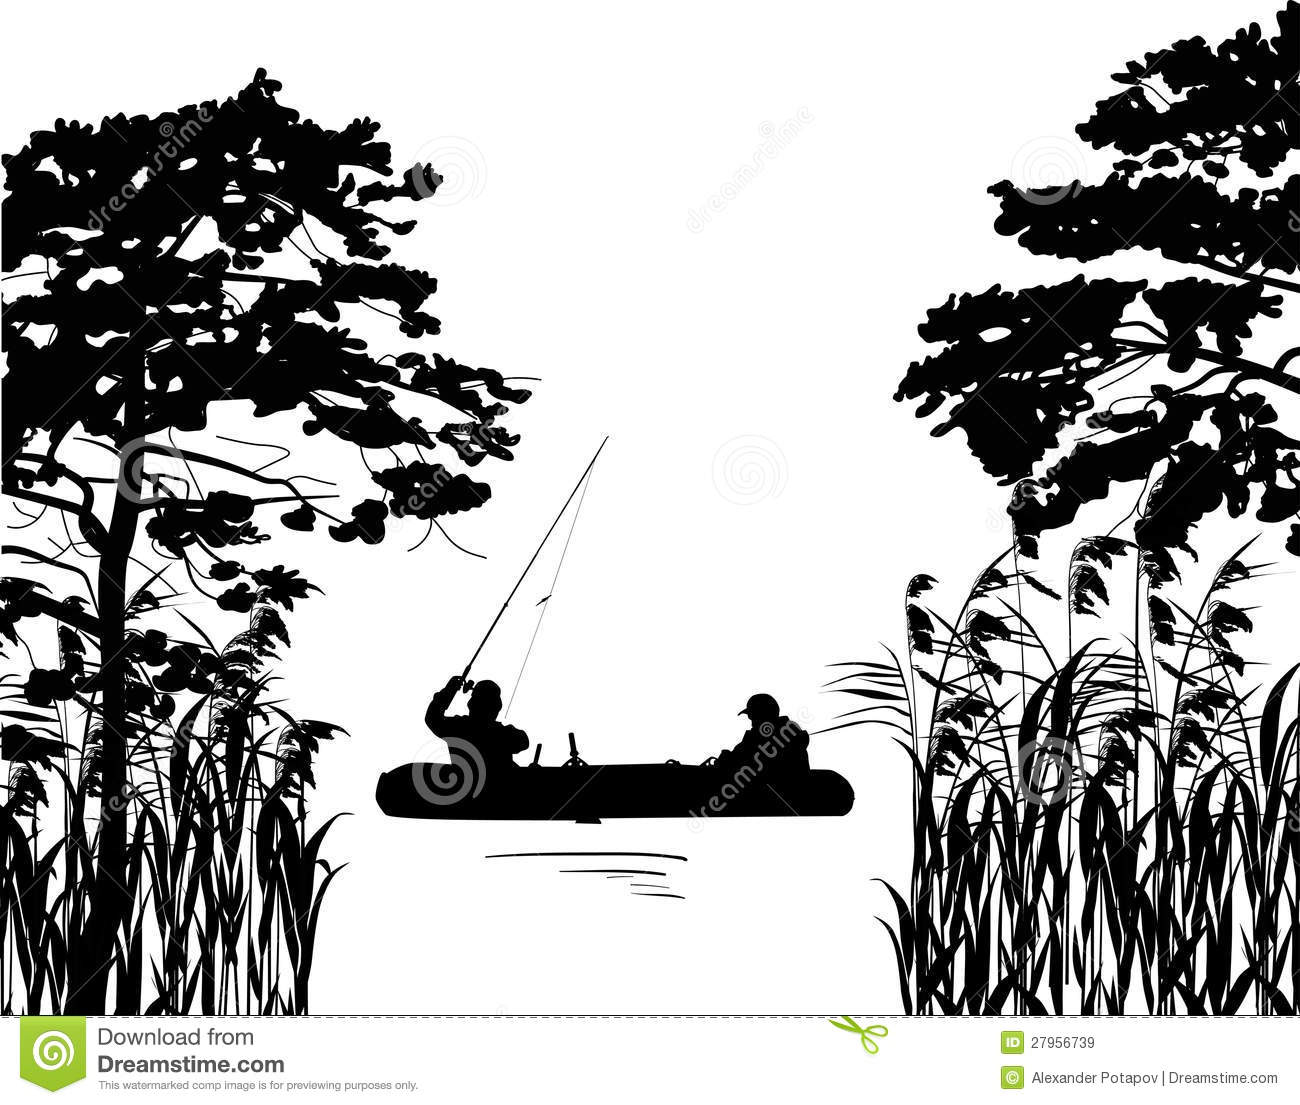 fishermen in boat silhouette between trees royalty free stock